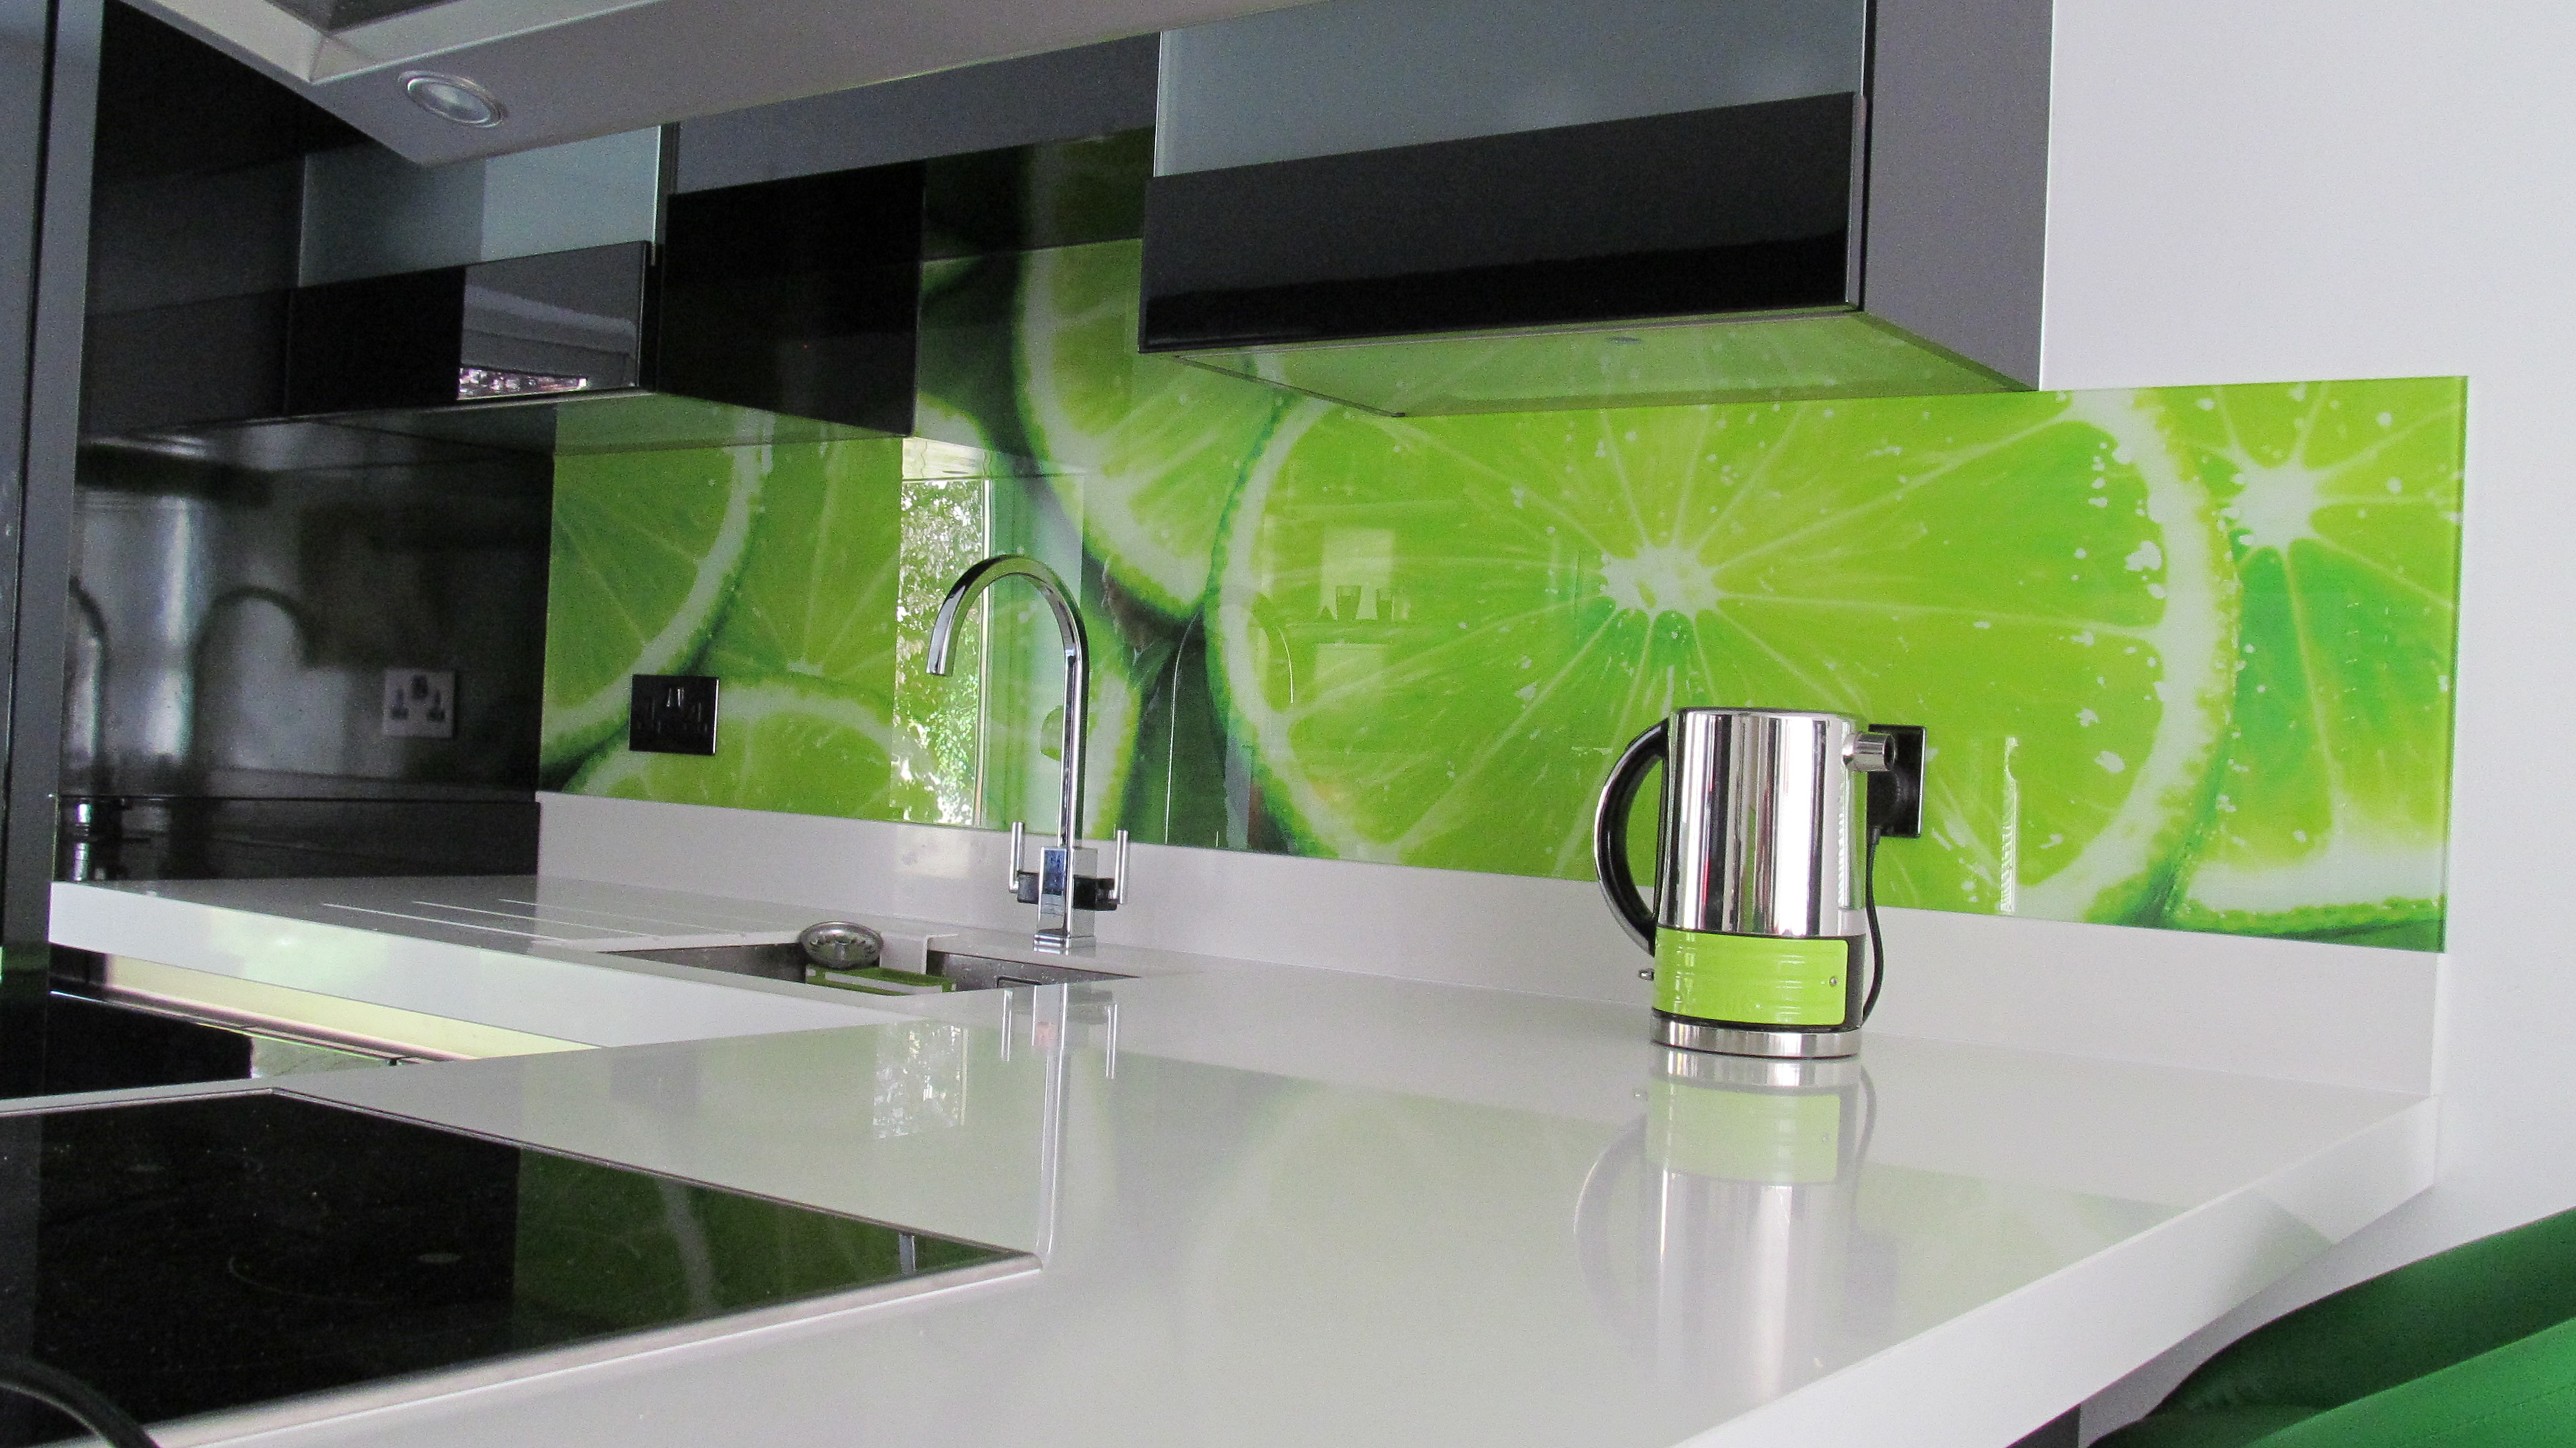 An image of a printed lime splashback, featuring an image of the fruit on the kitchen wall